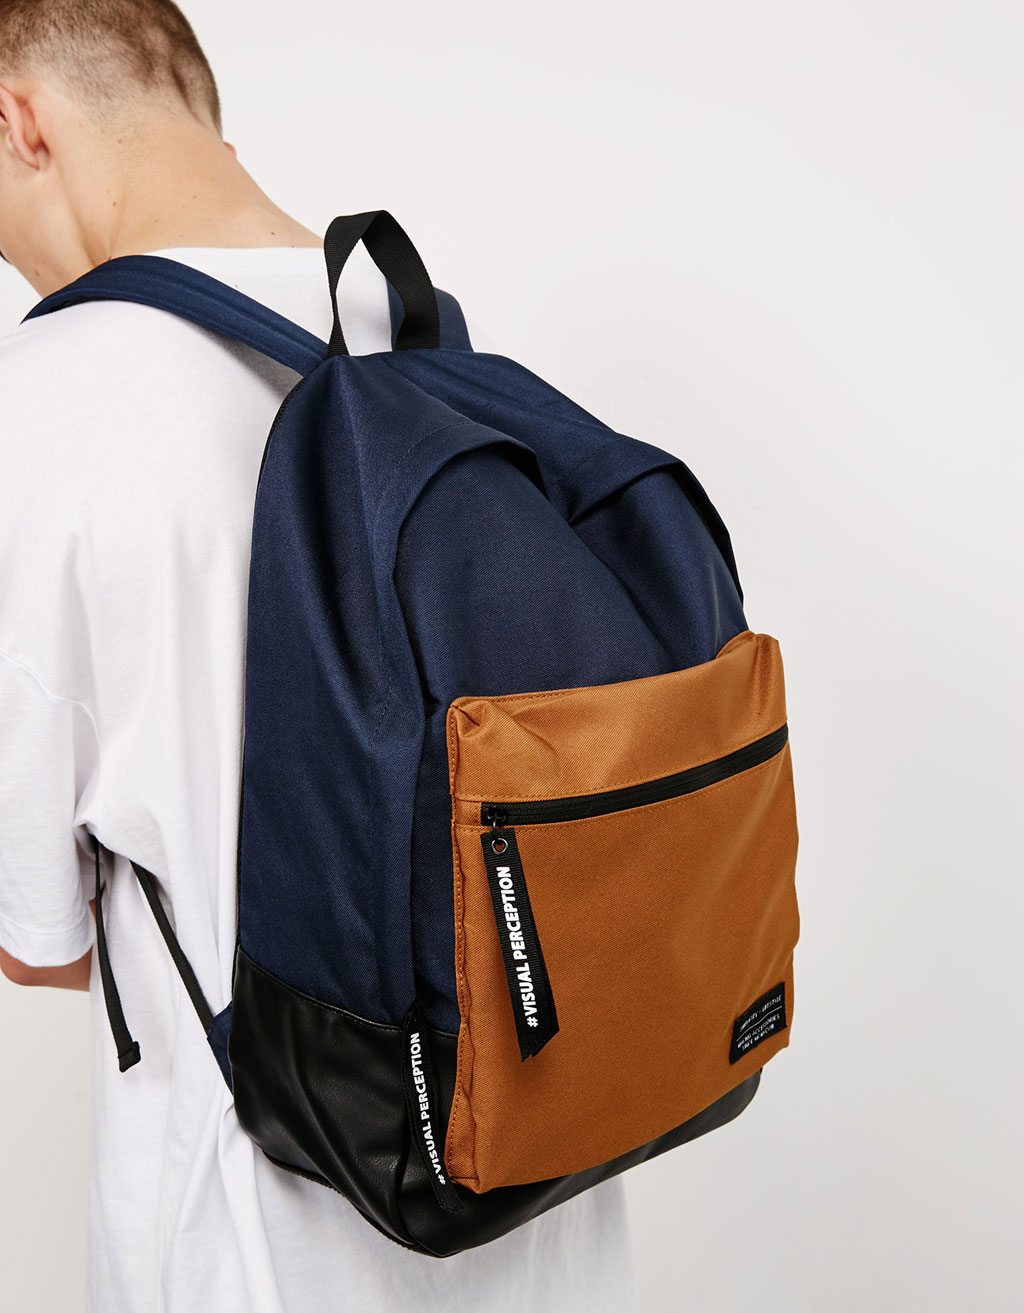 'Back to school' backpack